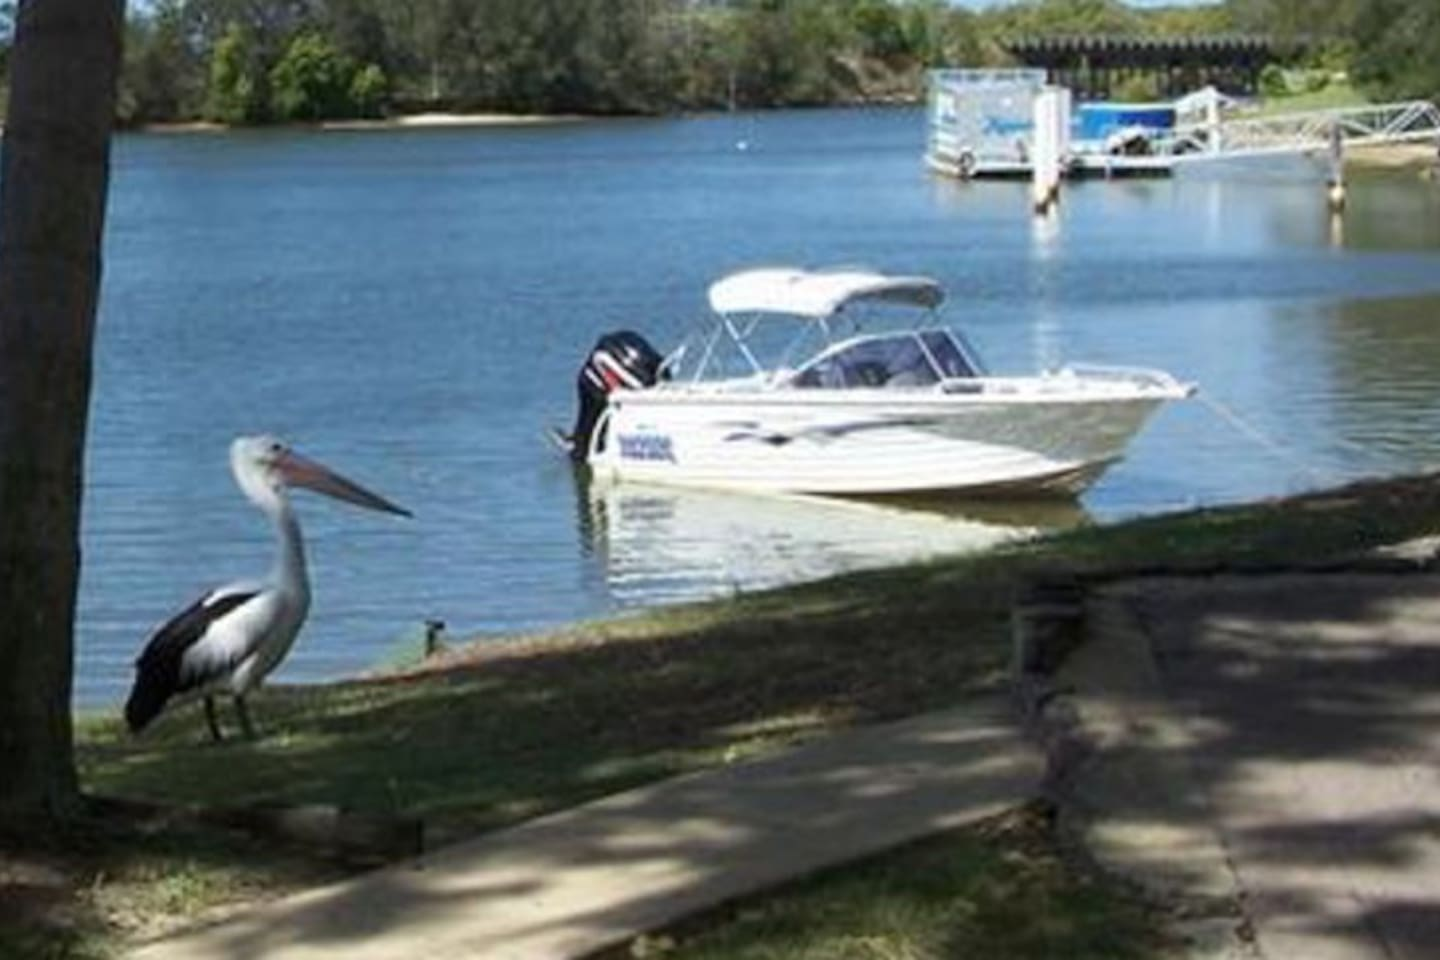 B&B Room in Cabin/Cottage with private deck, Maroochy River on your doorstep, walk through gardens to fish, swim, net for mud-crabs, row to Sunday Markets, Swimming pool just steps from your private deck.  (Fishing gear, Crab Pots & Small Boat Incl.)